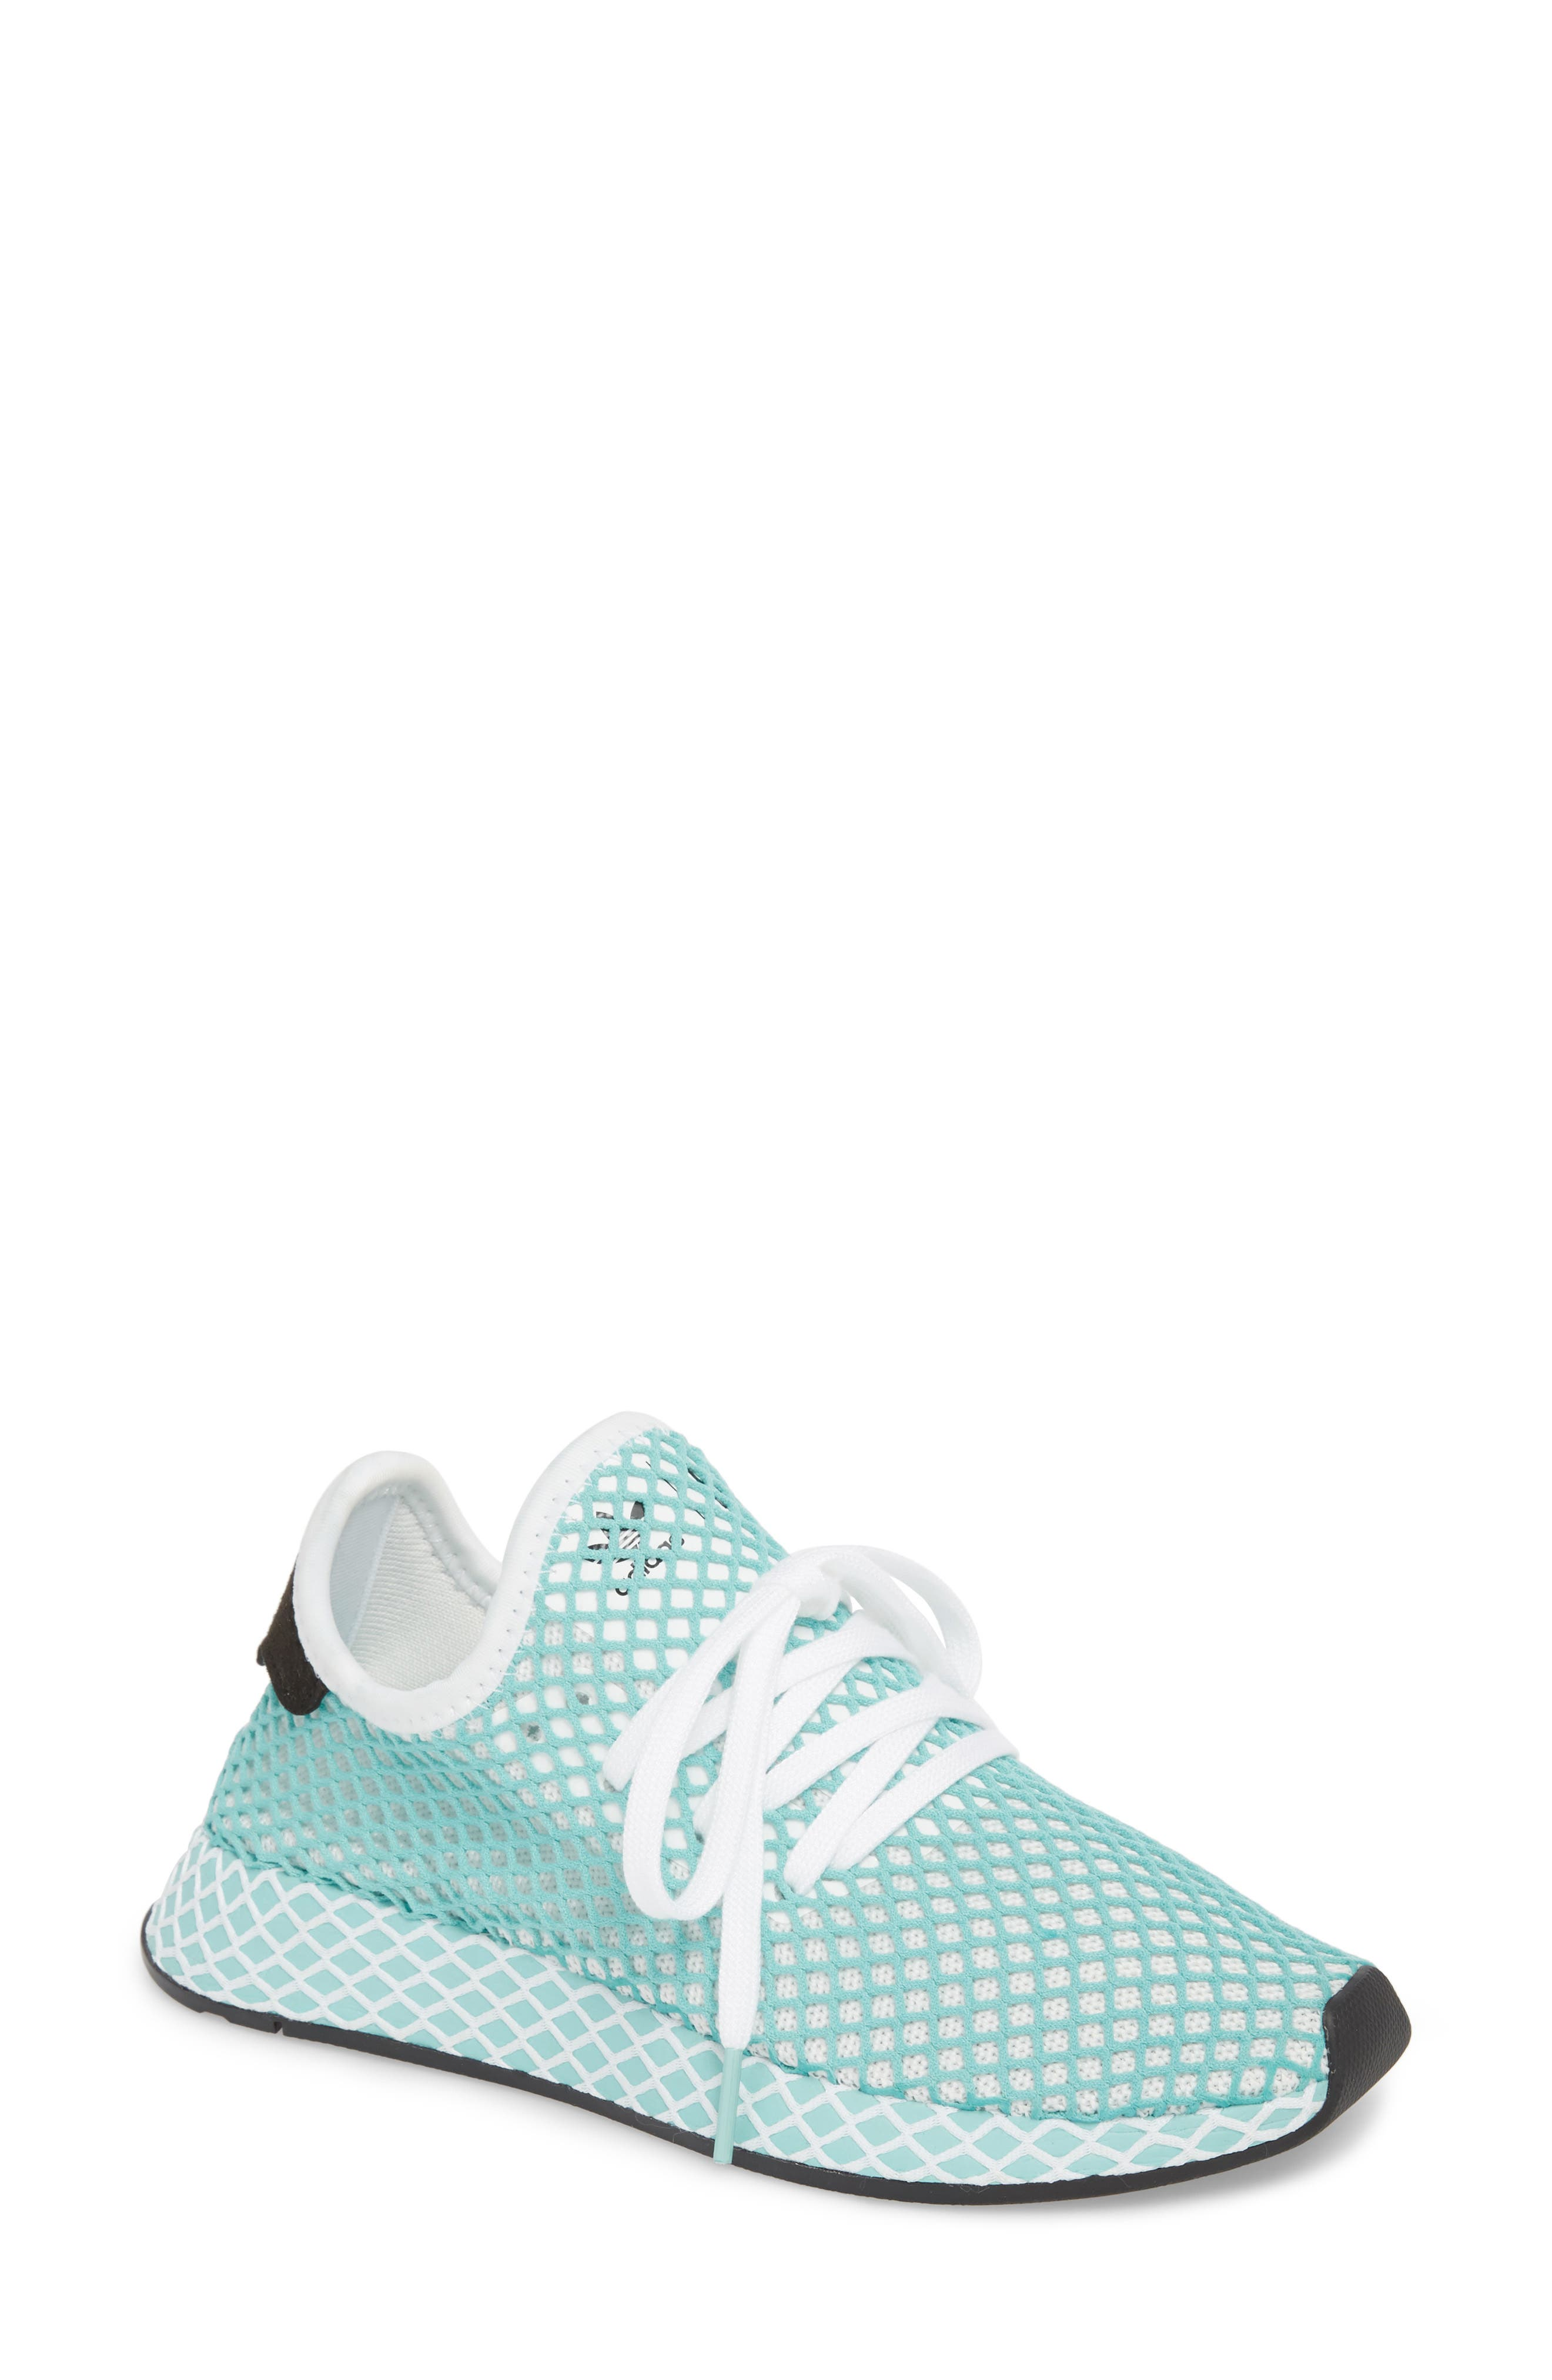 Deerupt x Parley Runner Sneaker,                             Main thumbnail 1, color,                             White/ White/ Blue Spirit